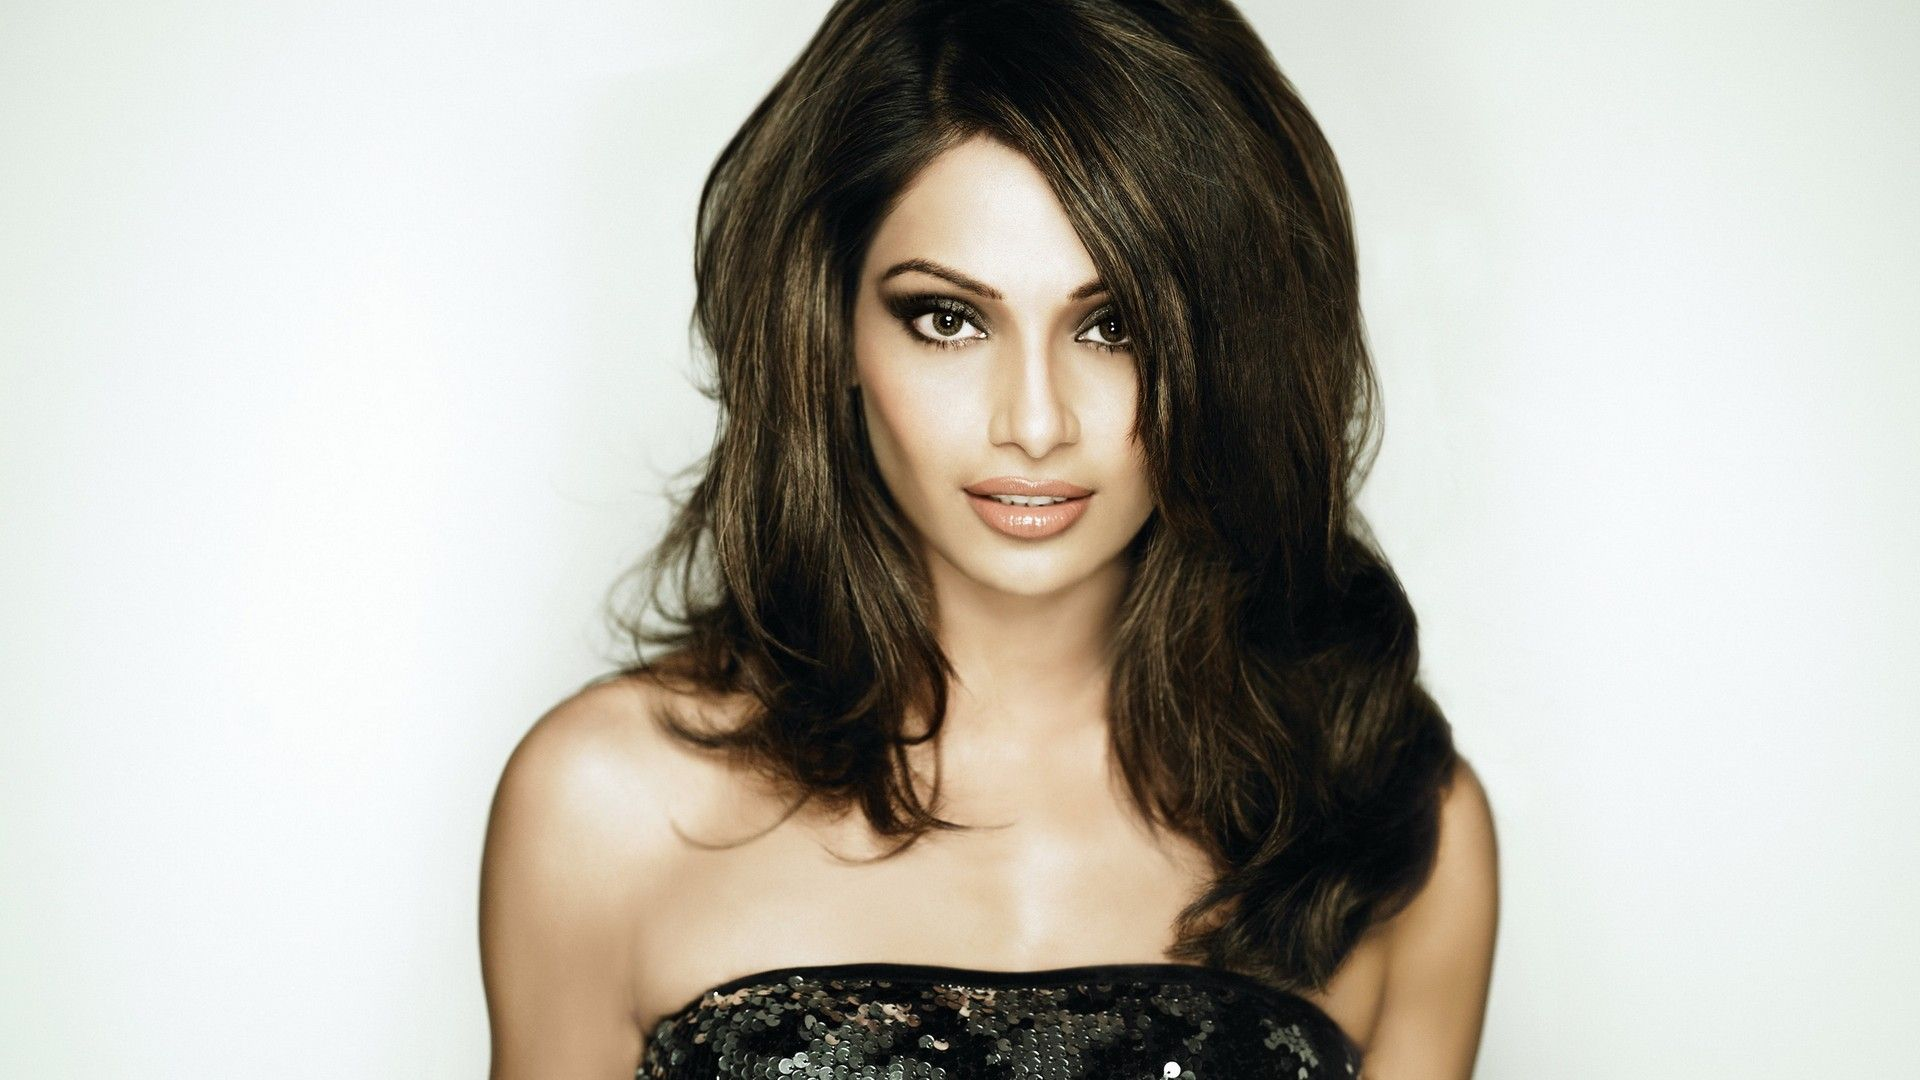 Beautiful Bipasha Basu Face Background Free Mobile Desktop Hd Pictures